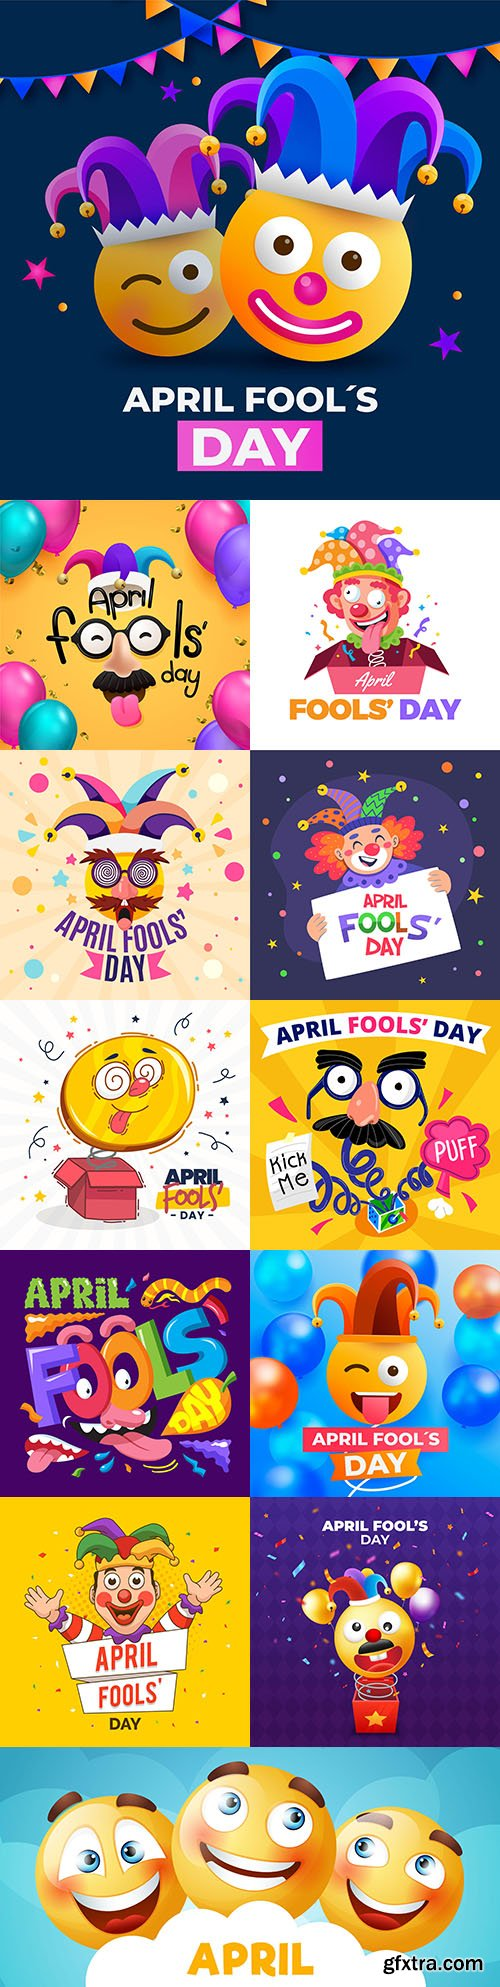 Fools day and April 1 illustration flat design